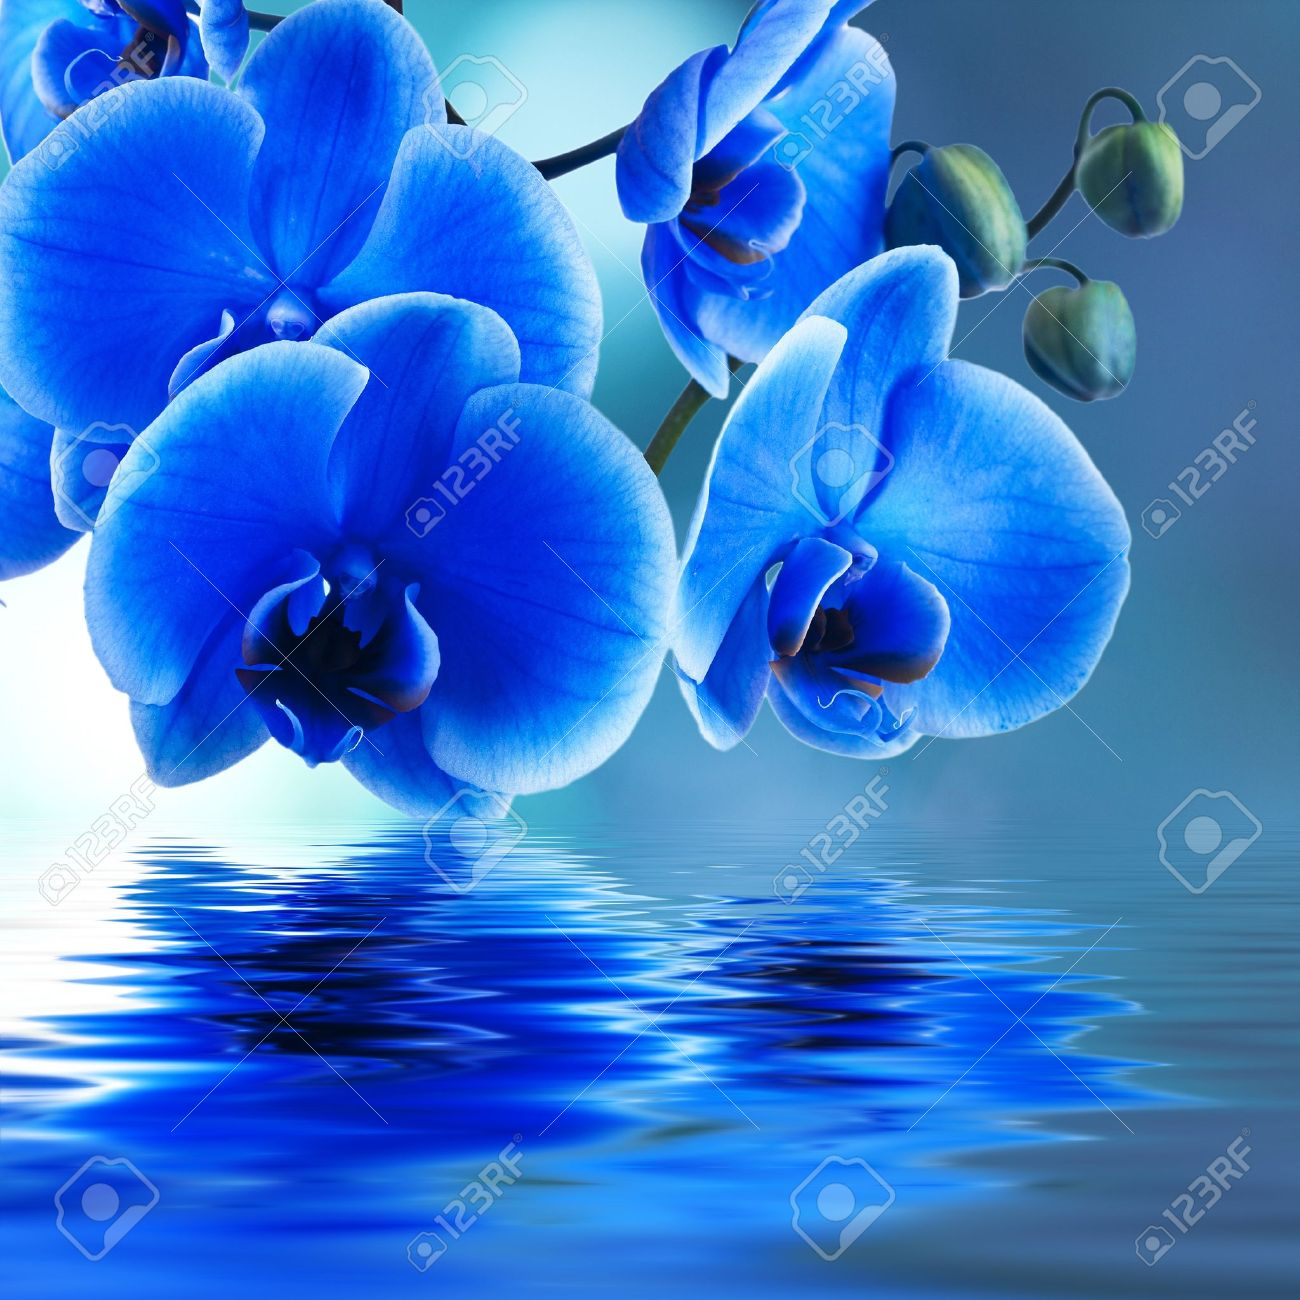 blue orchid background with reflection in water - 19986703